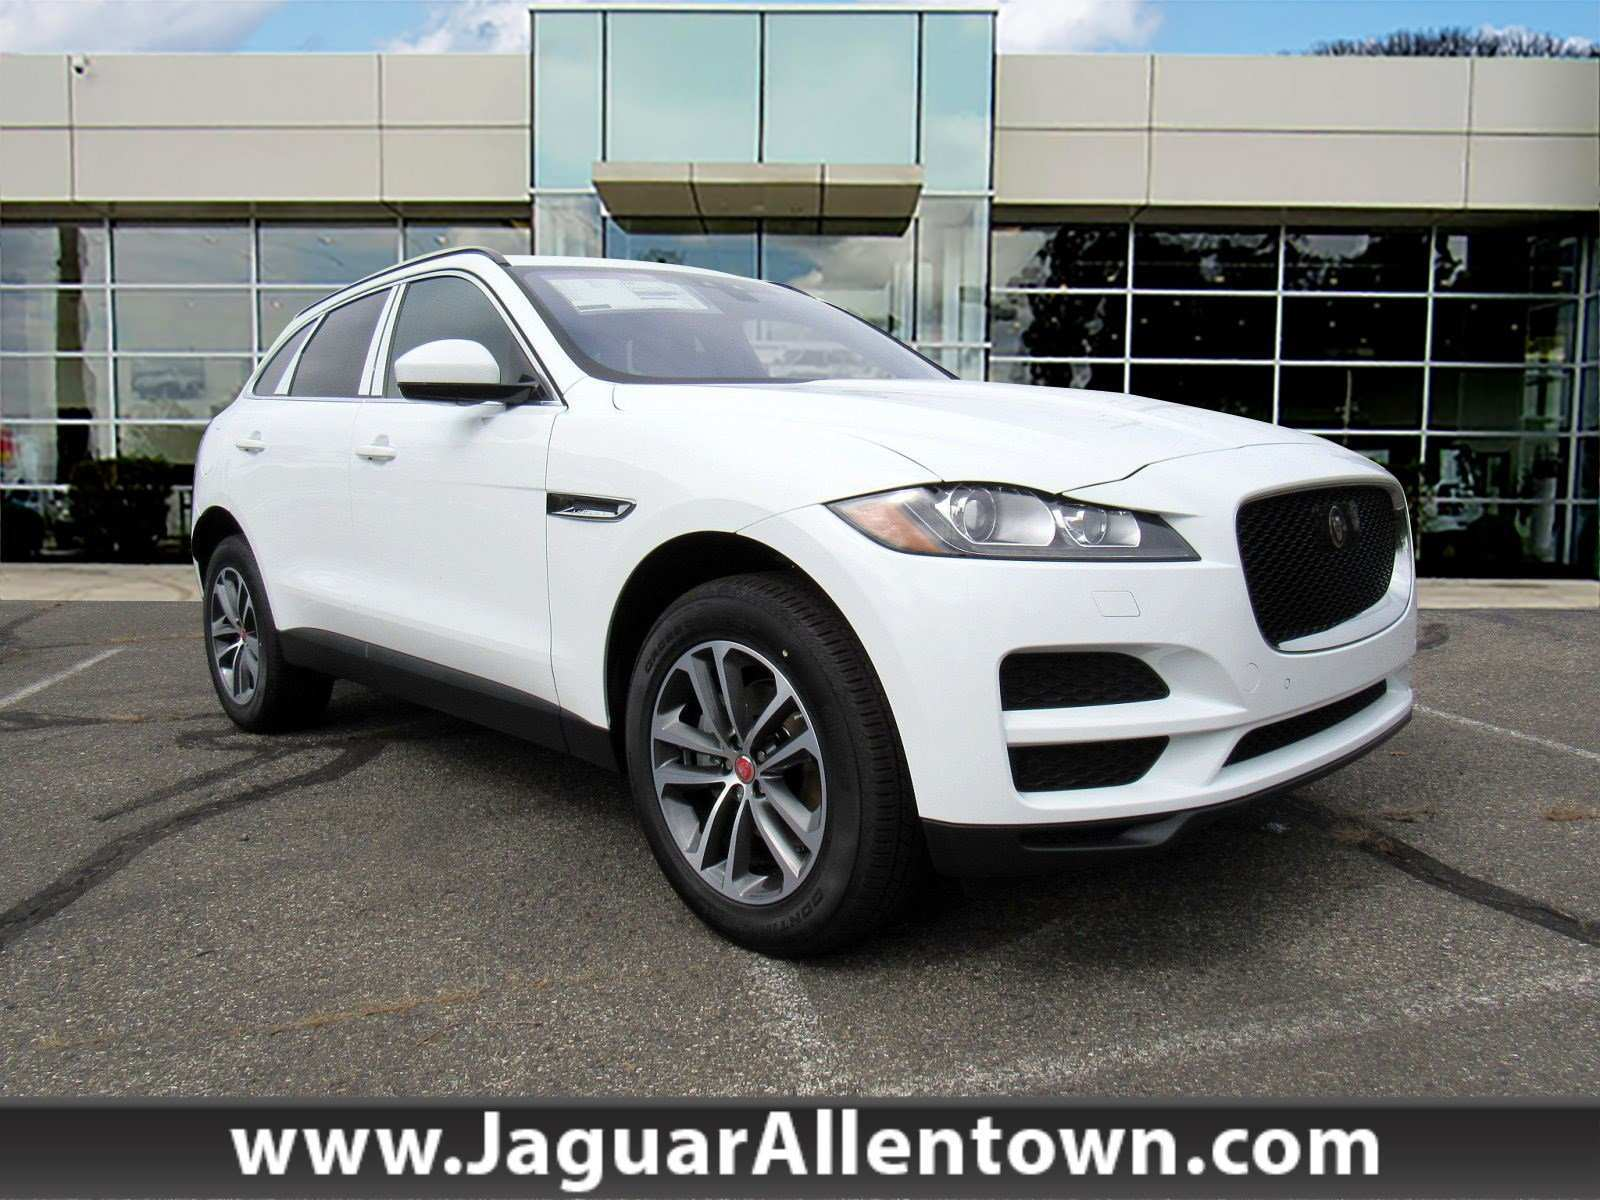 86 New 2019 Jaguar Suv Concept And Review